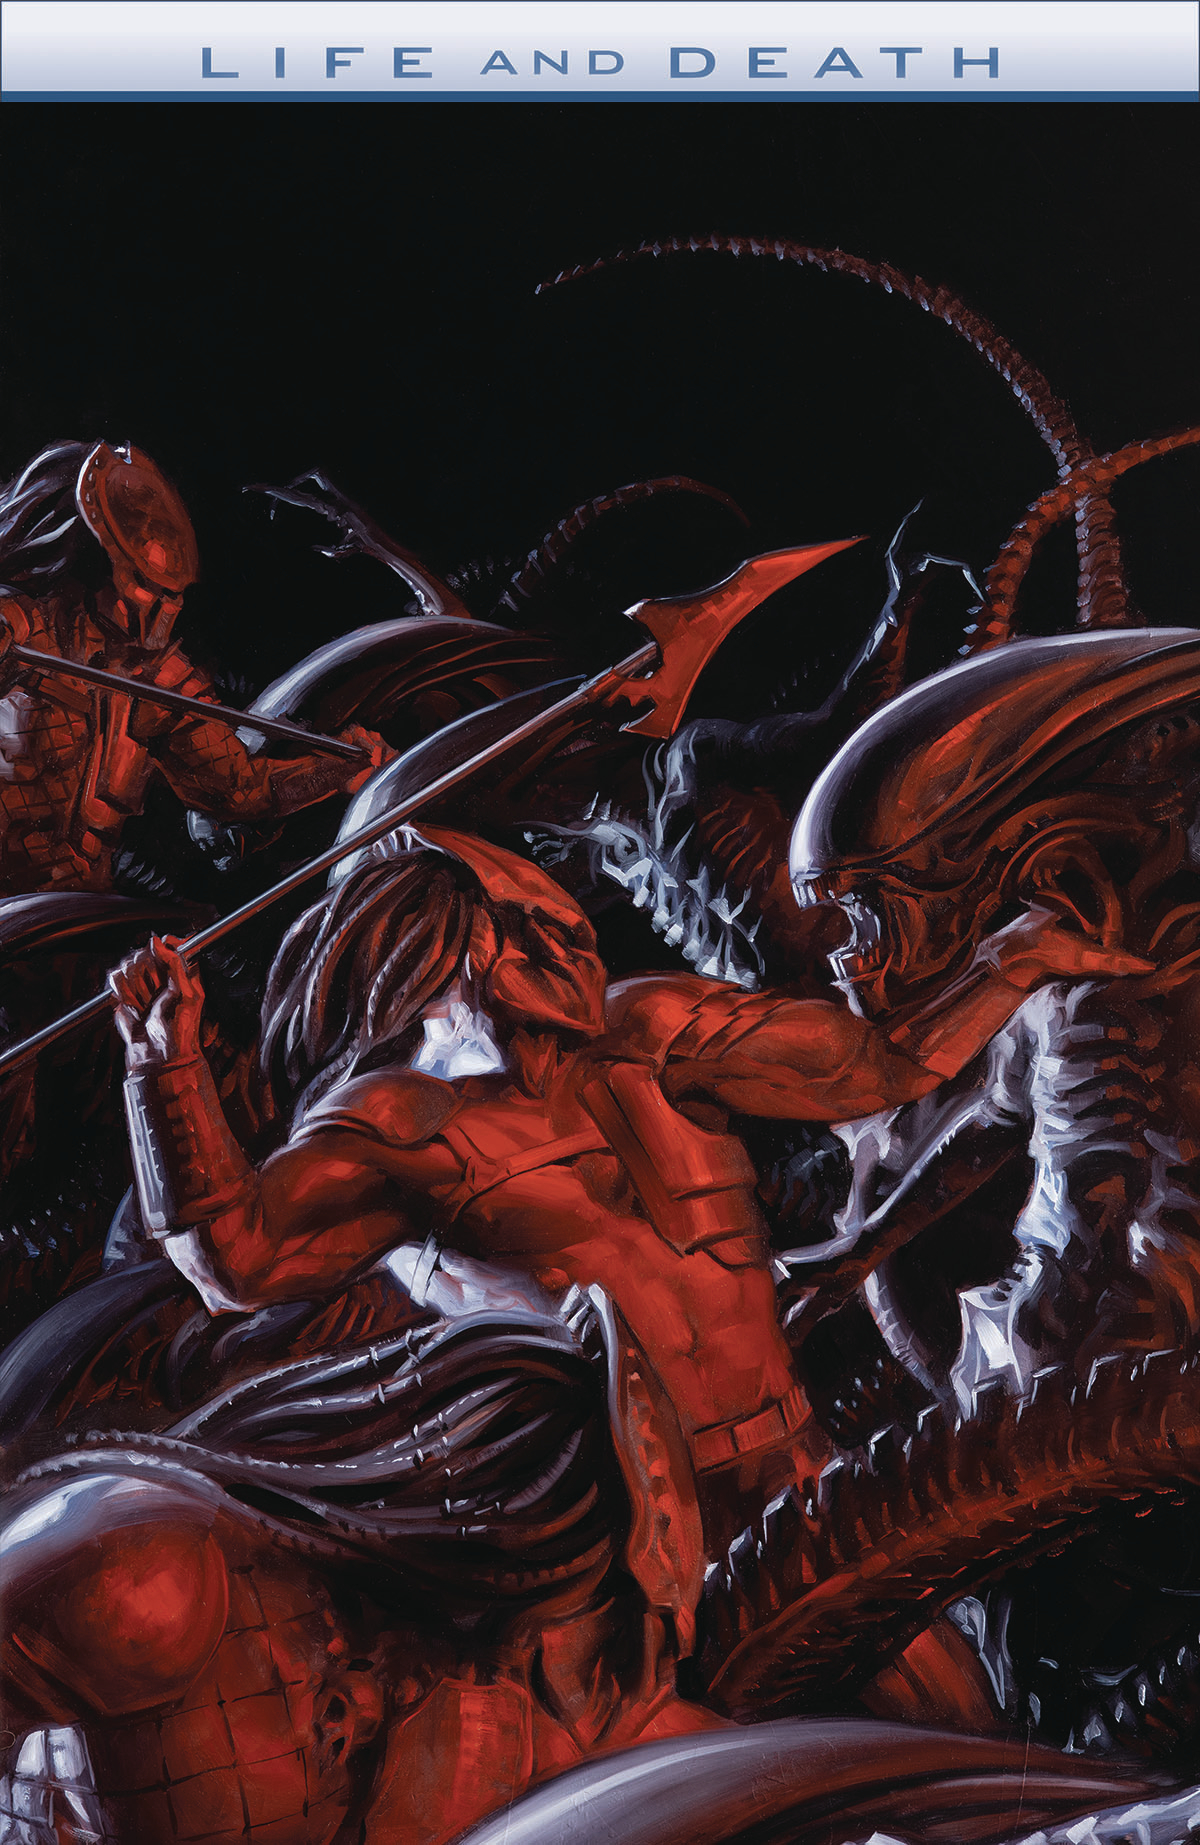 ALIENS VS PREDATOR LIFE AND DEATH #2